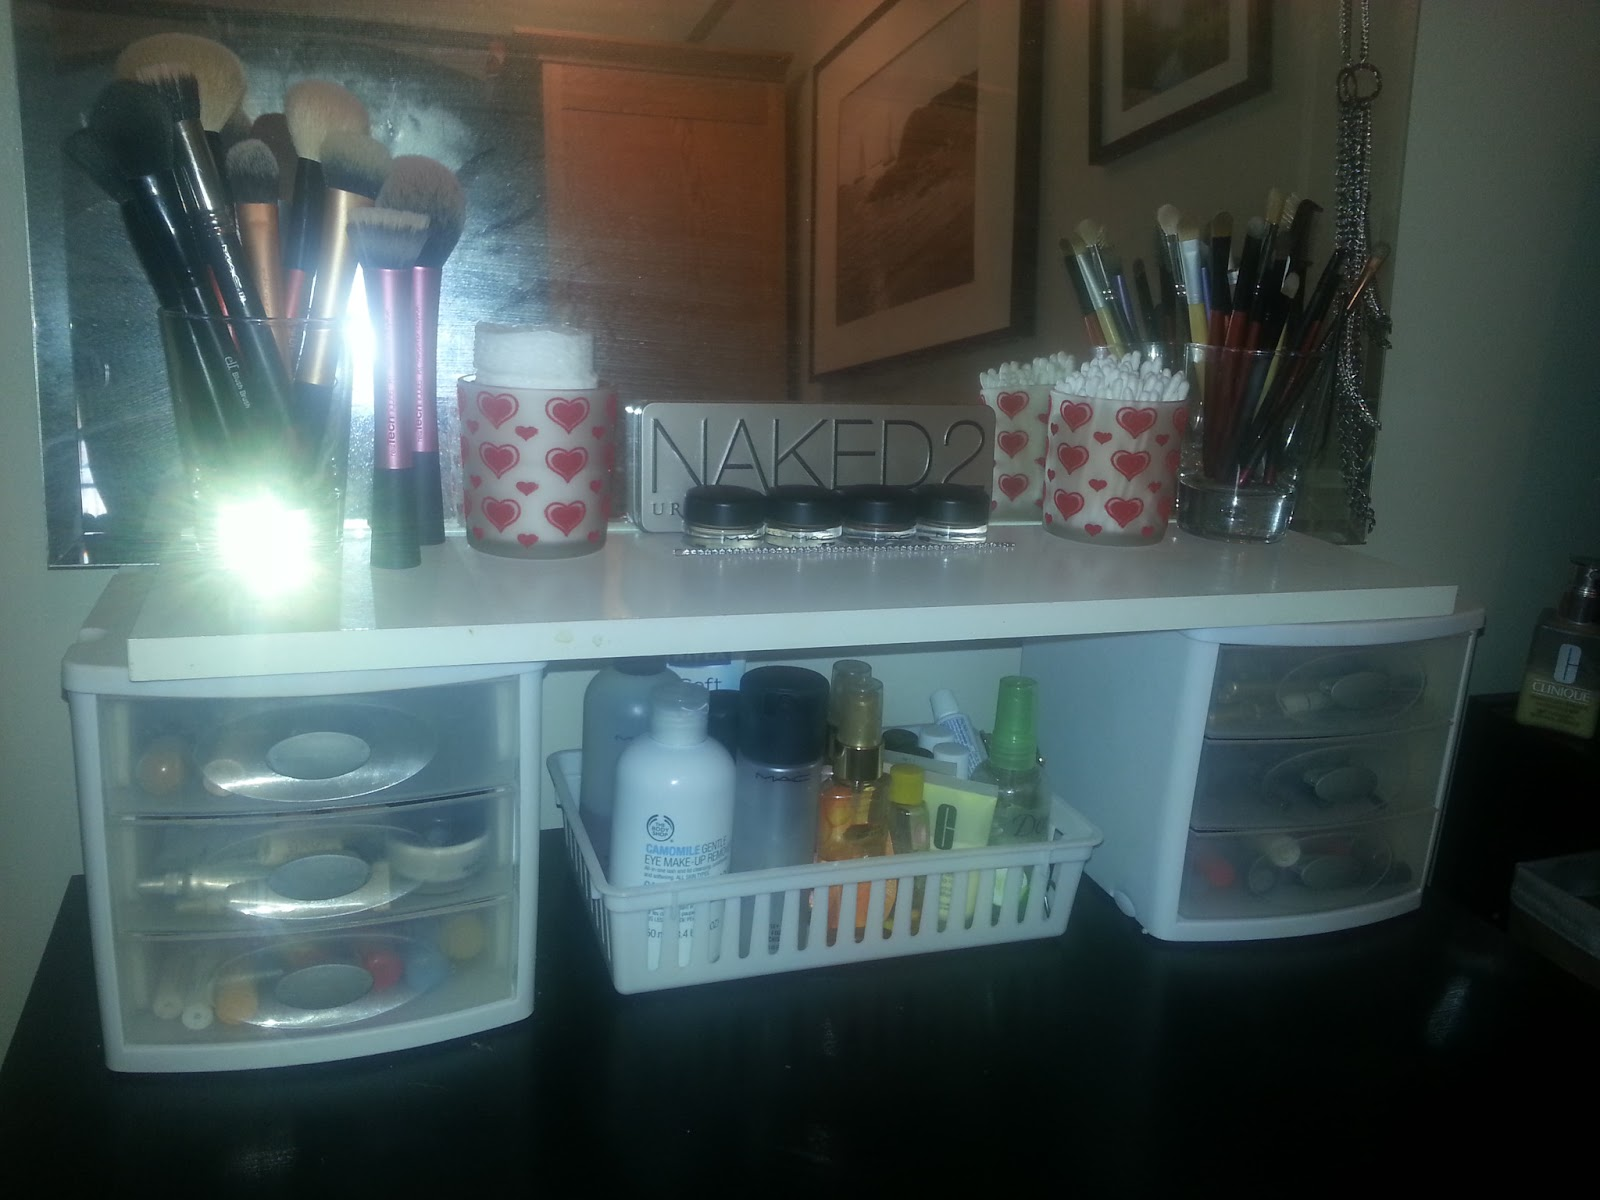 Organizational Diva: Make-Up Storage & Organization